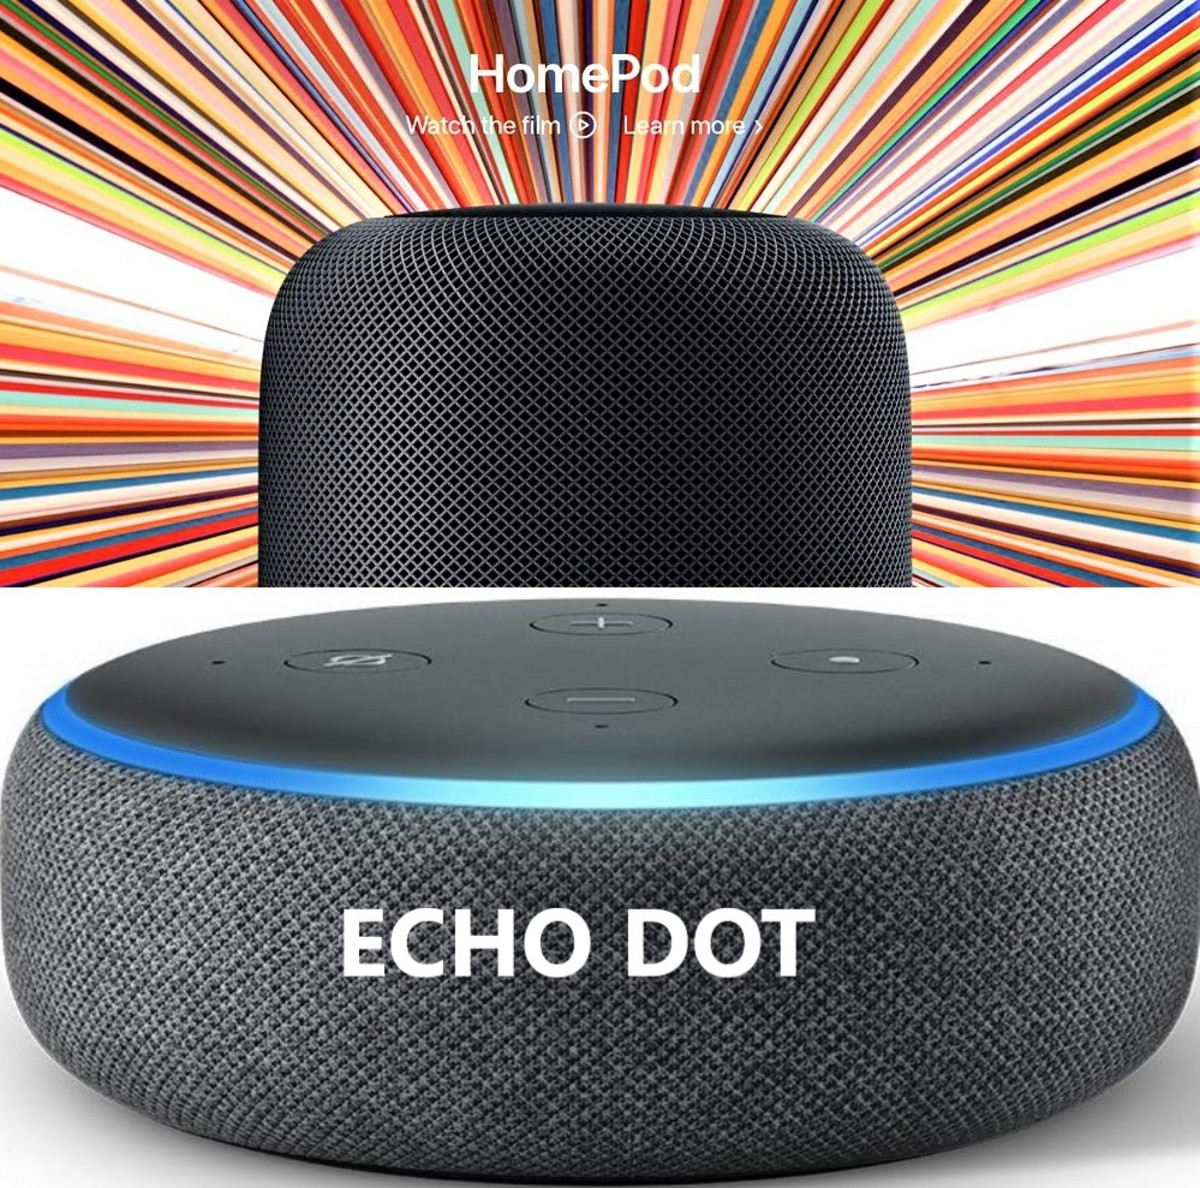 Amazon Echo vs Apple HomePod: Who Wins?